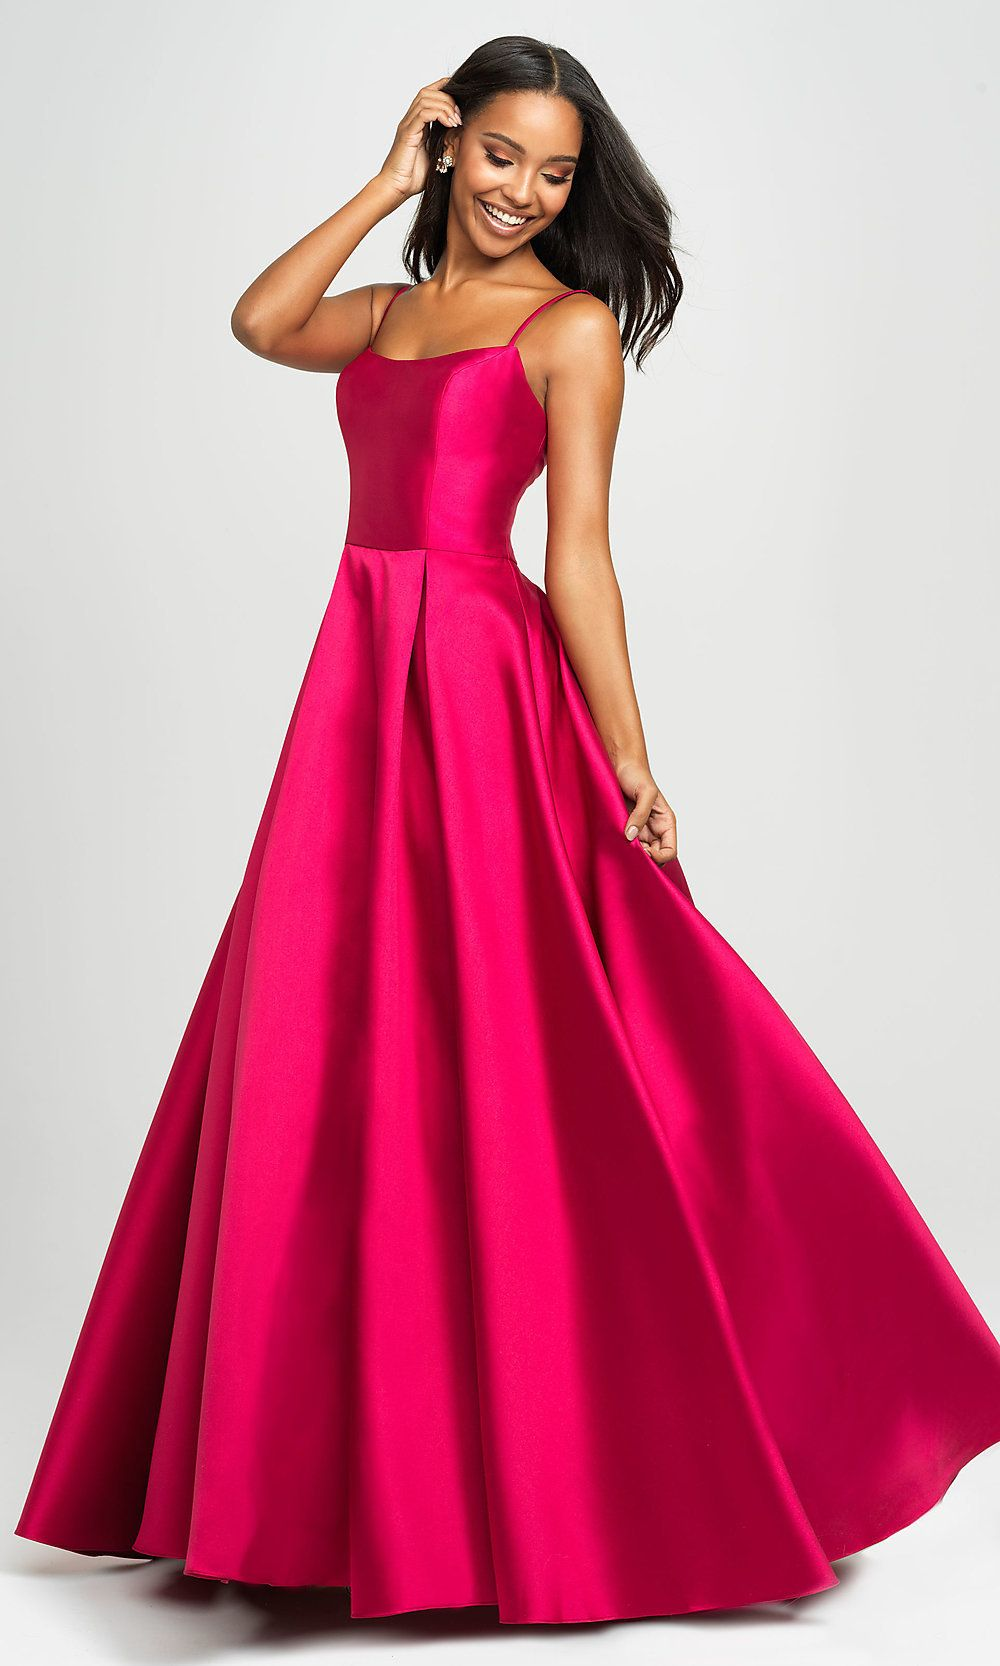 89412a9f8f7b Long Prom Ball Gown with Pockets in 2019 | Prom | Prom dresses ...